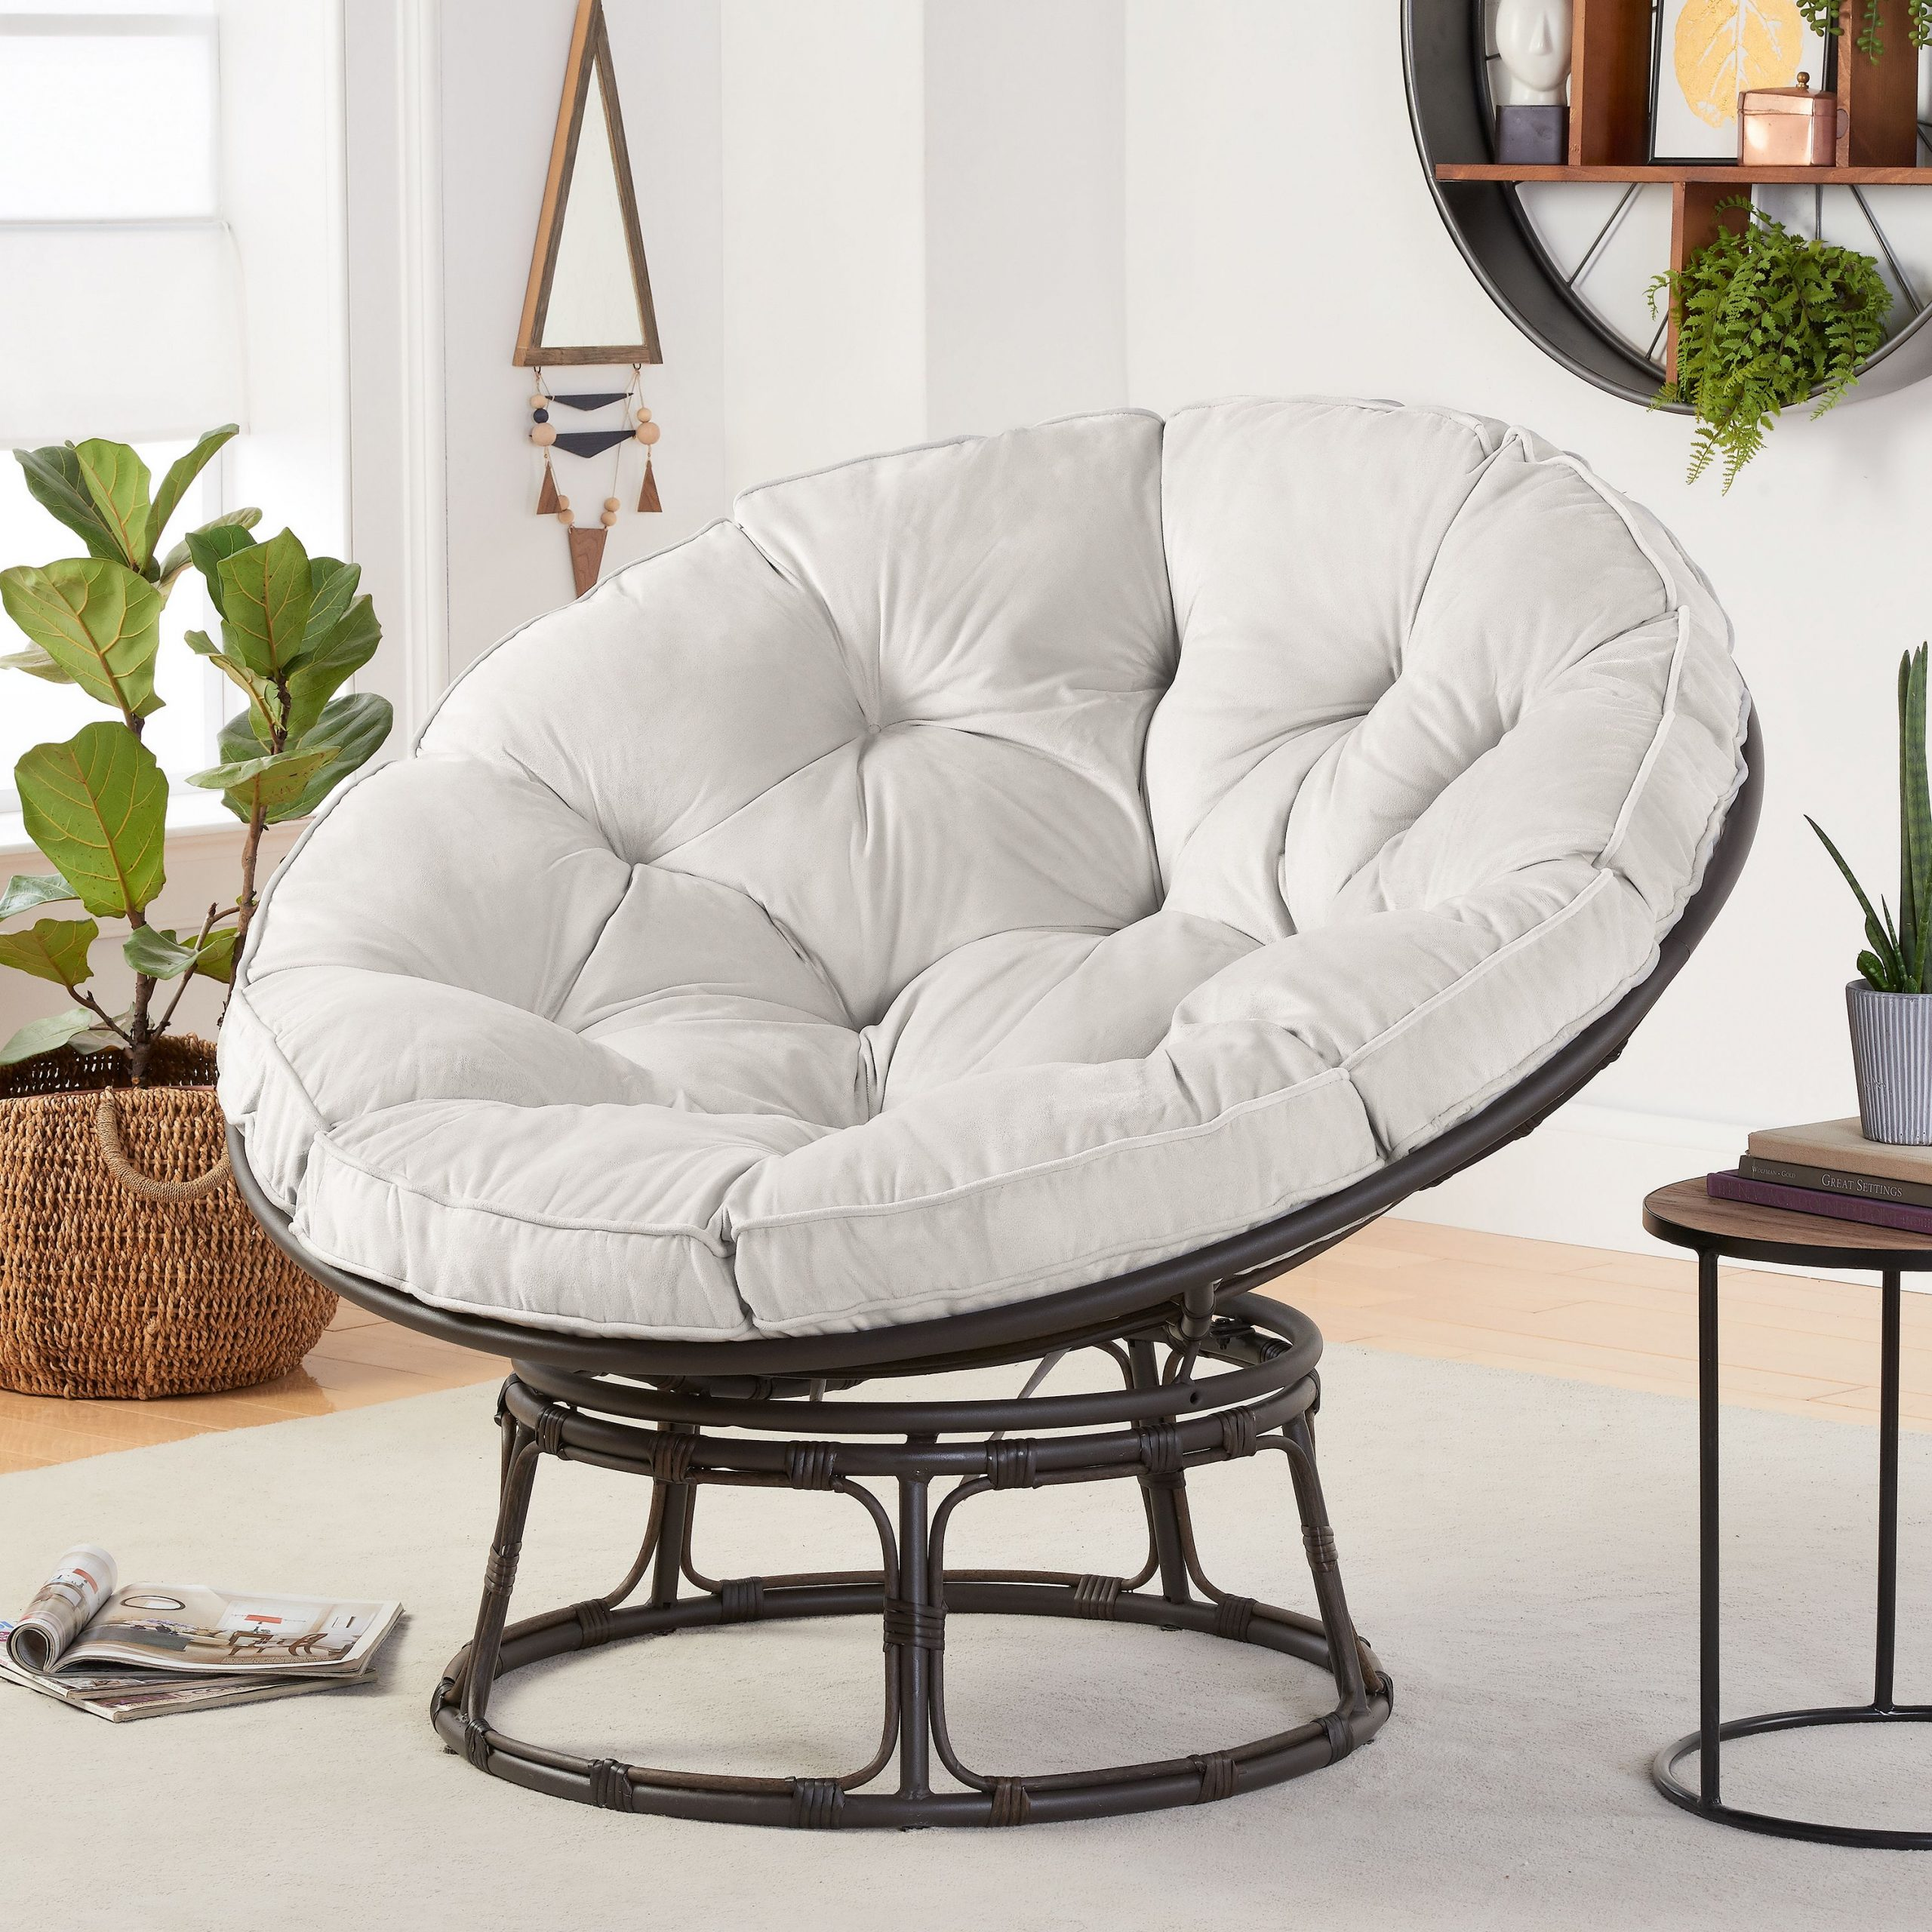 Better Homes & Gardens Papasan Chair With Fabric Cushion, Pumice Gray – Walmart Regarding Decker Papasan Chairs (View 2 of 15)